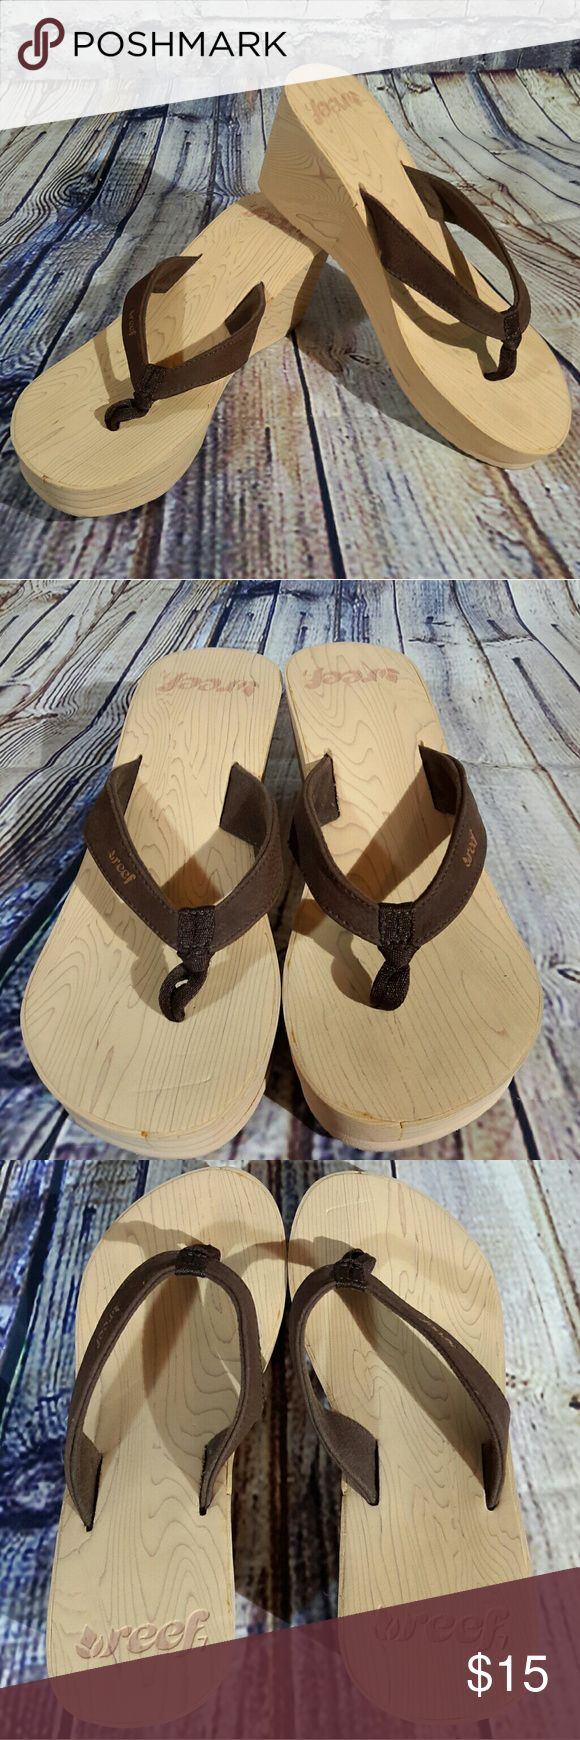 Reef size 7 wedges Excellent, like new condition Reef wedges. These have very little wear as shown. Wedge is 3 inches. Light brown base with dark brown straps. Size 7. Reef Shoes Wedges